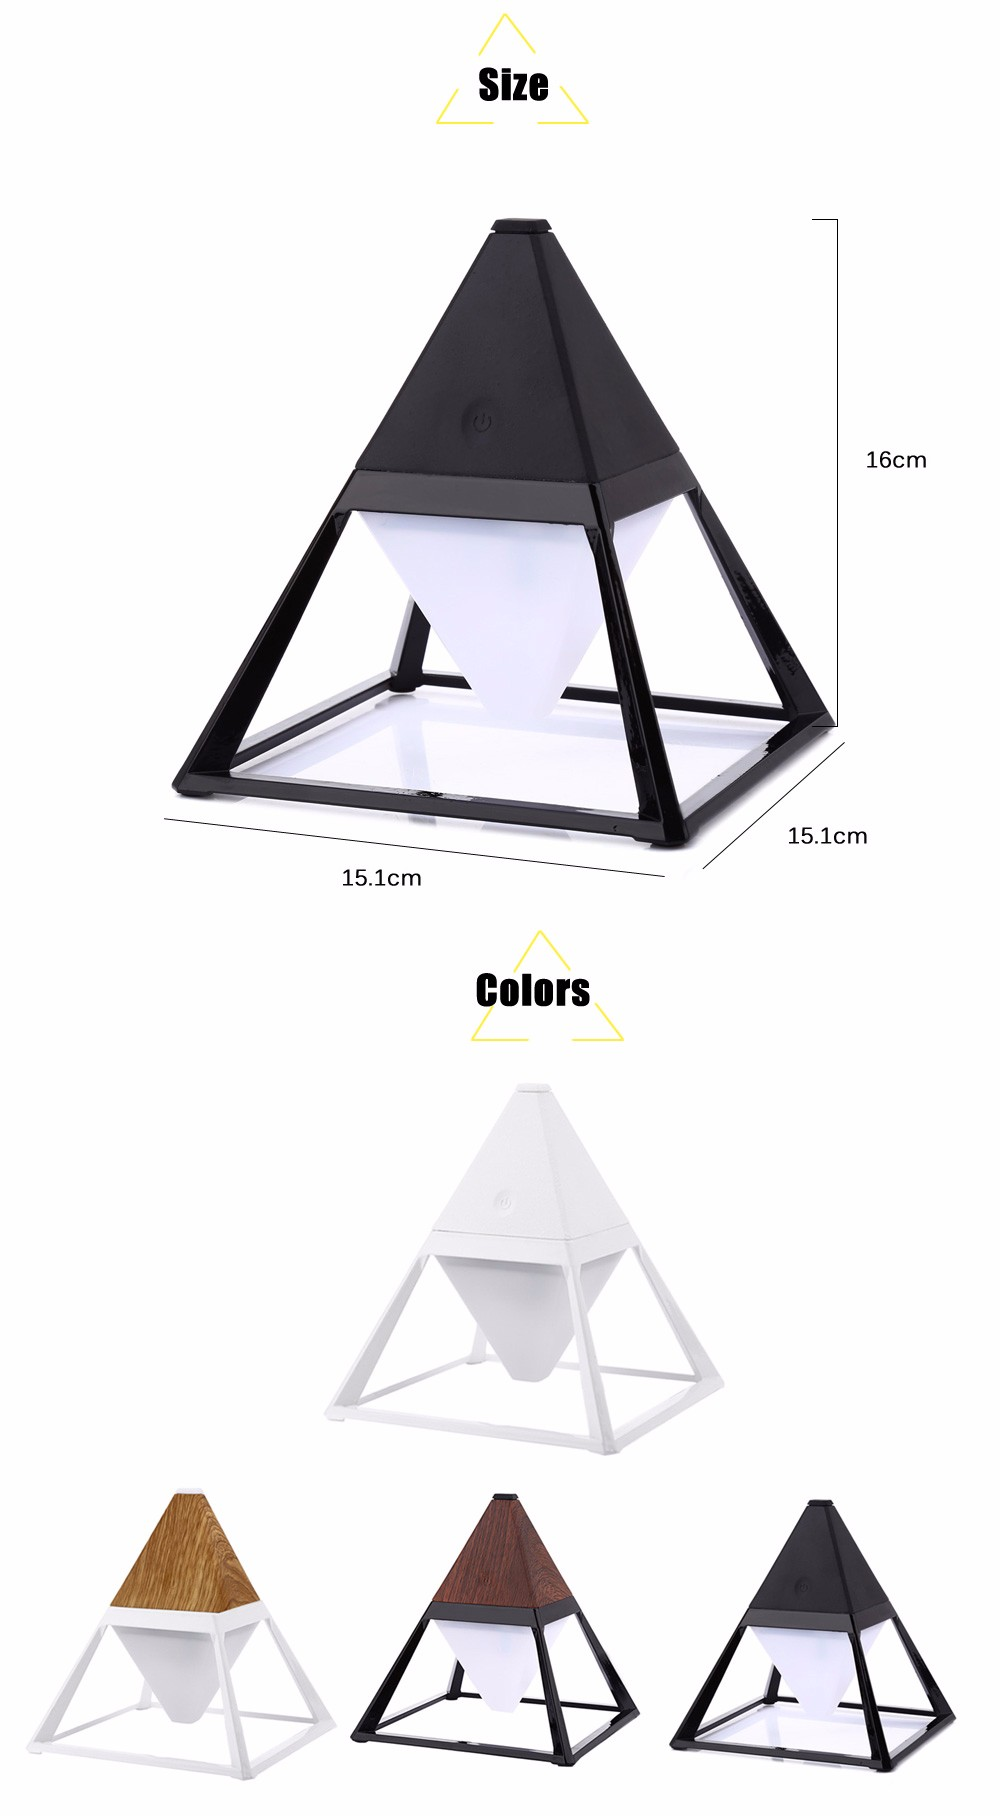 GXDiffuser AC 100 - 240V 4W Creative USB Rechargeable LED Desk Light Touch Dimmable Table Lamp